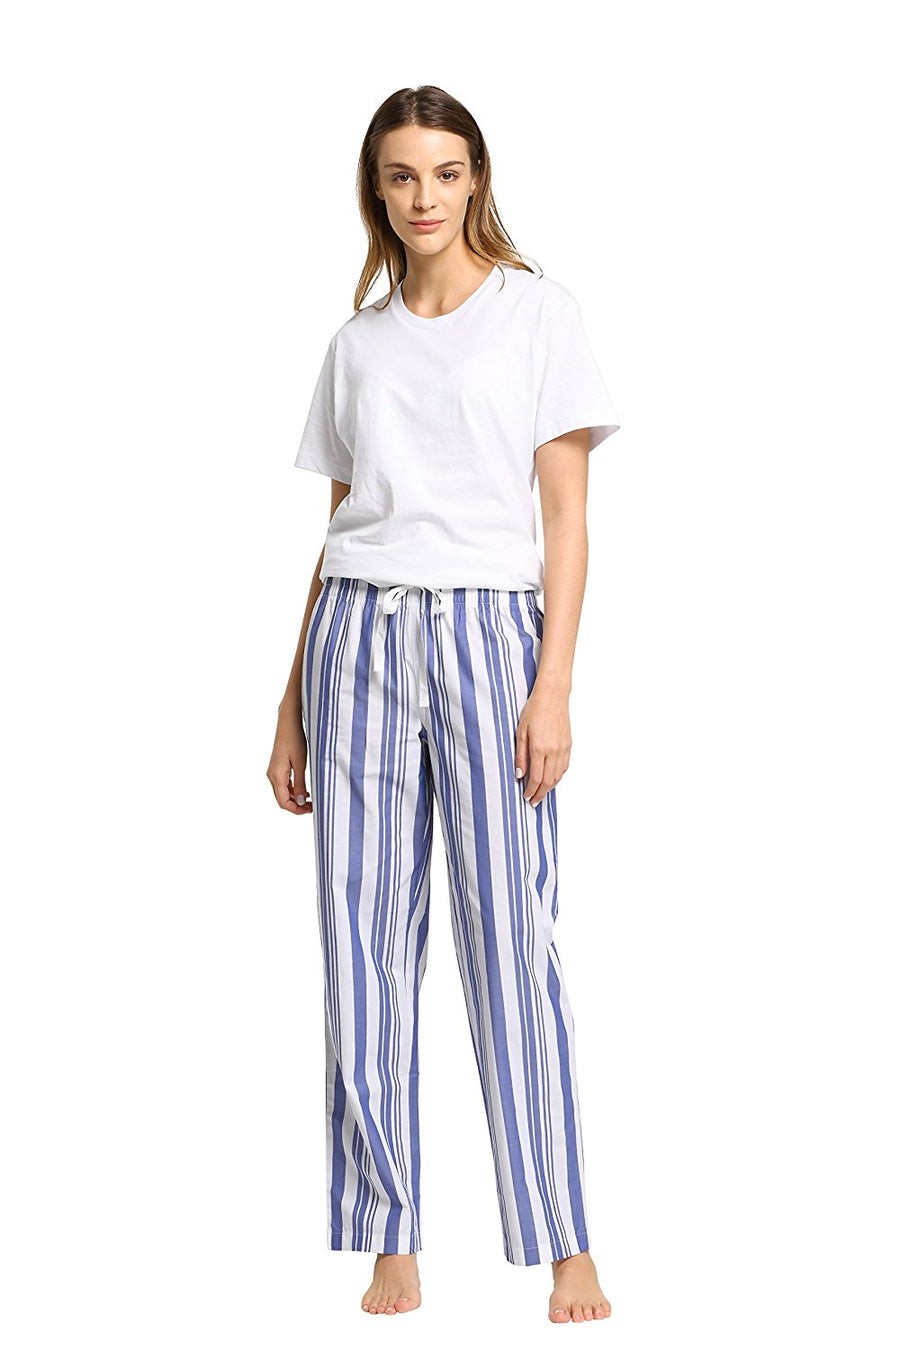 CYZ Women's 100% Cotton Woven Sleep Pajama Pants